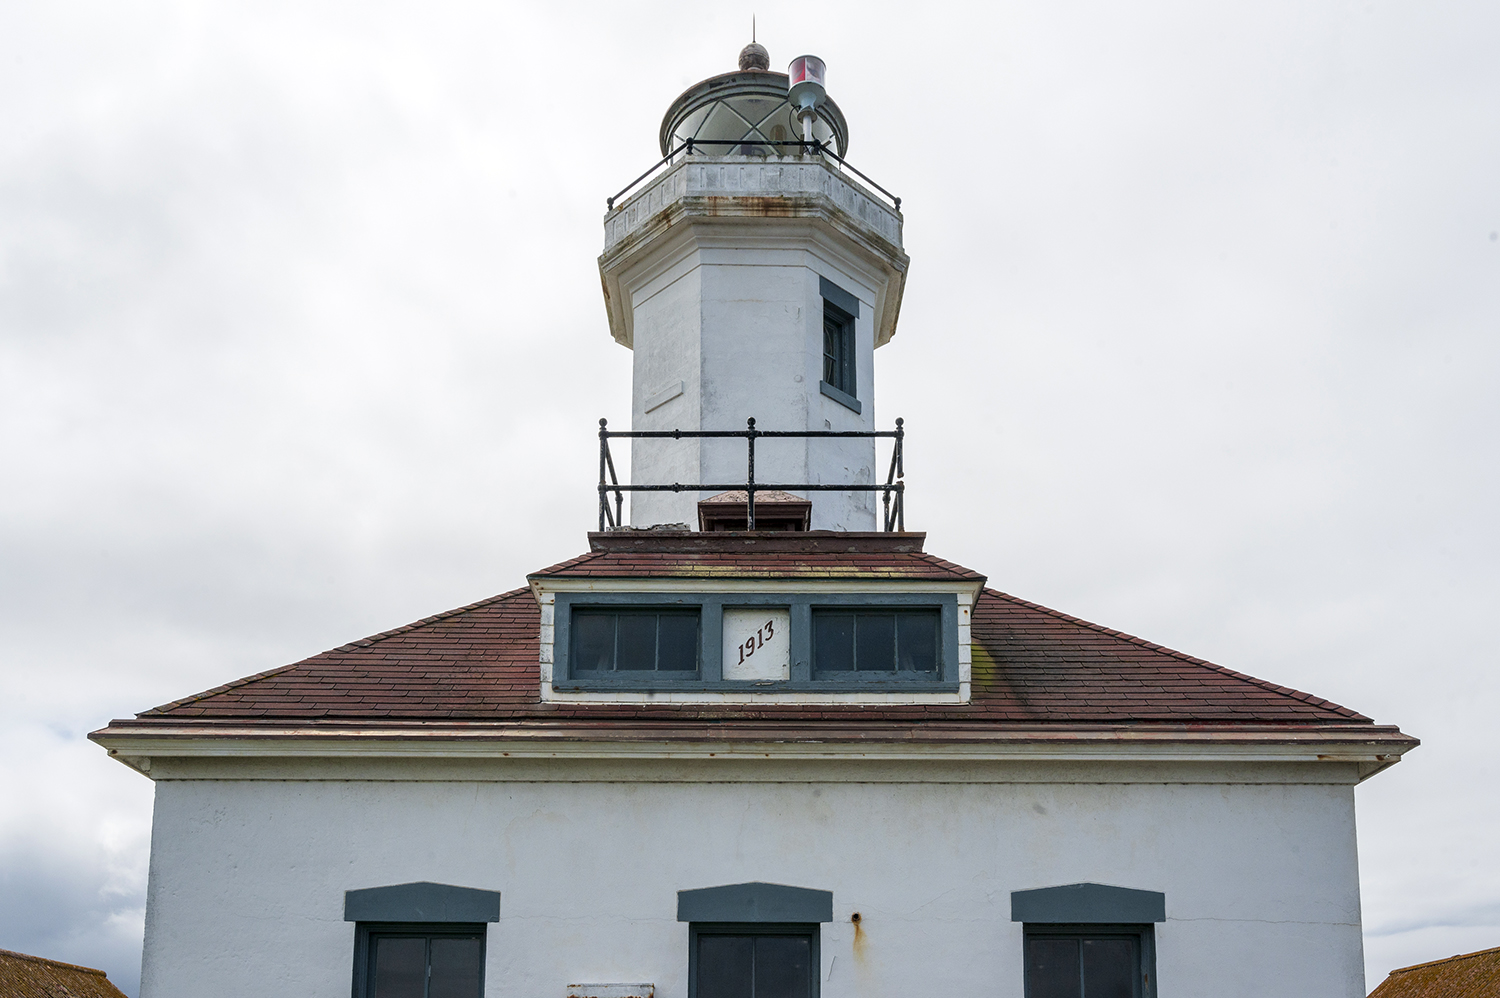 In 1913, the structure required renovation and was transformed into its current Cape Cod-inspired design standing at 49 feet tall. (Image: Rachael Jones / Seattle Refined)